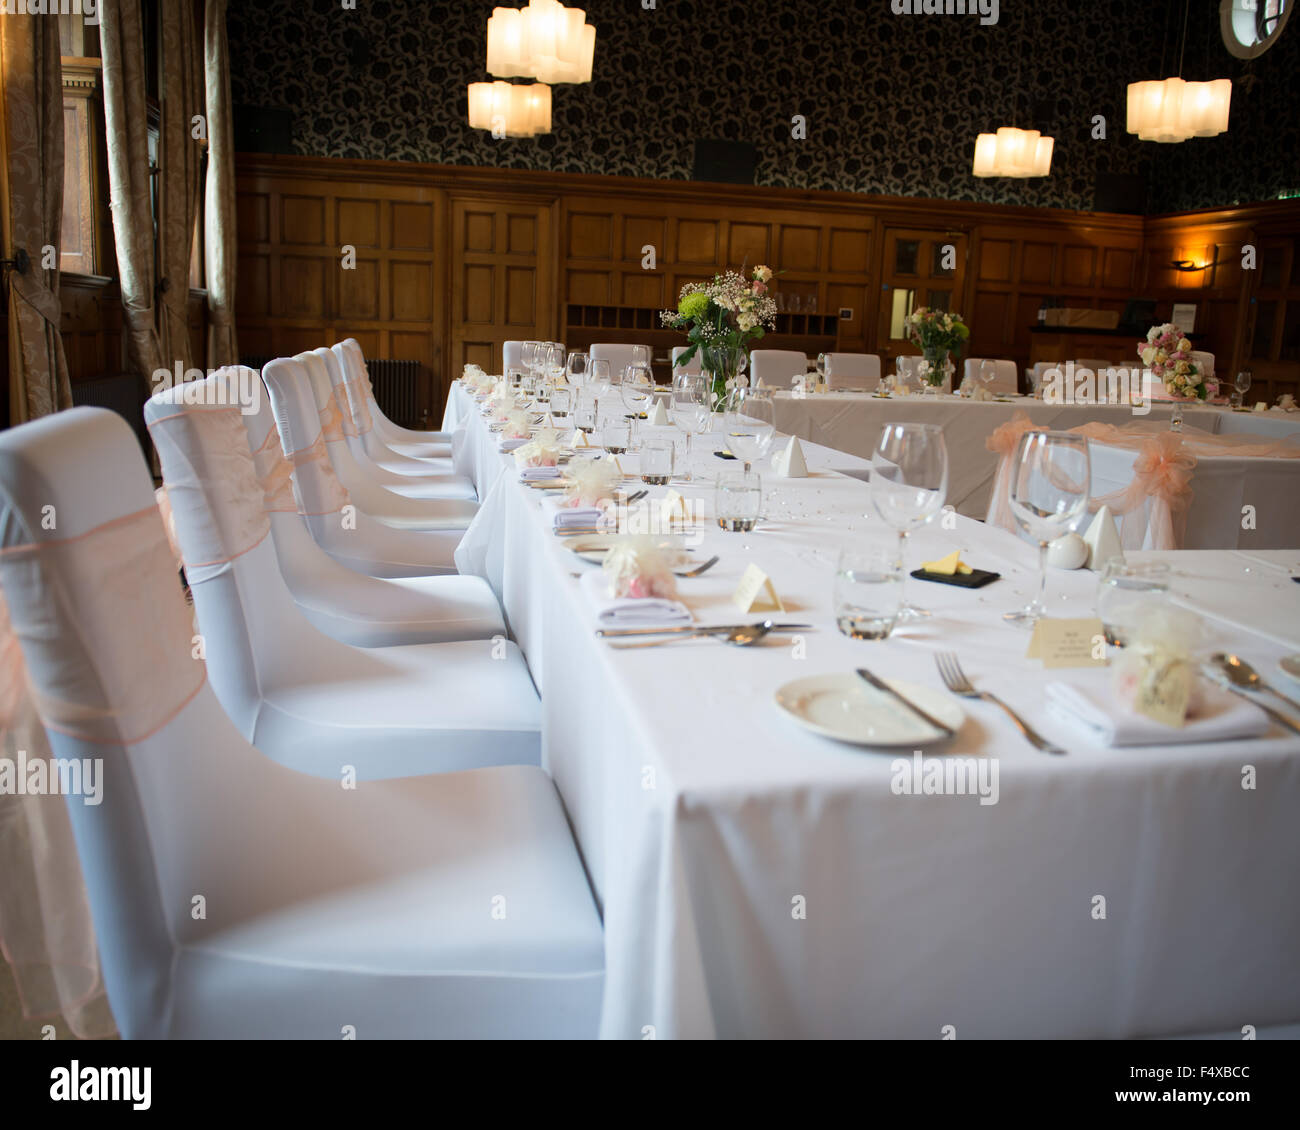 Wedding Reception Table Layout Top Table With White